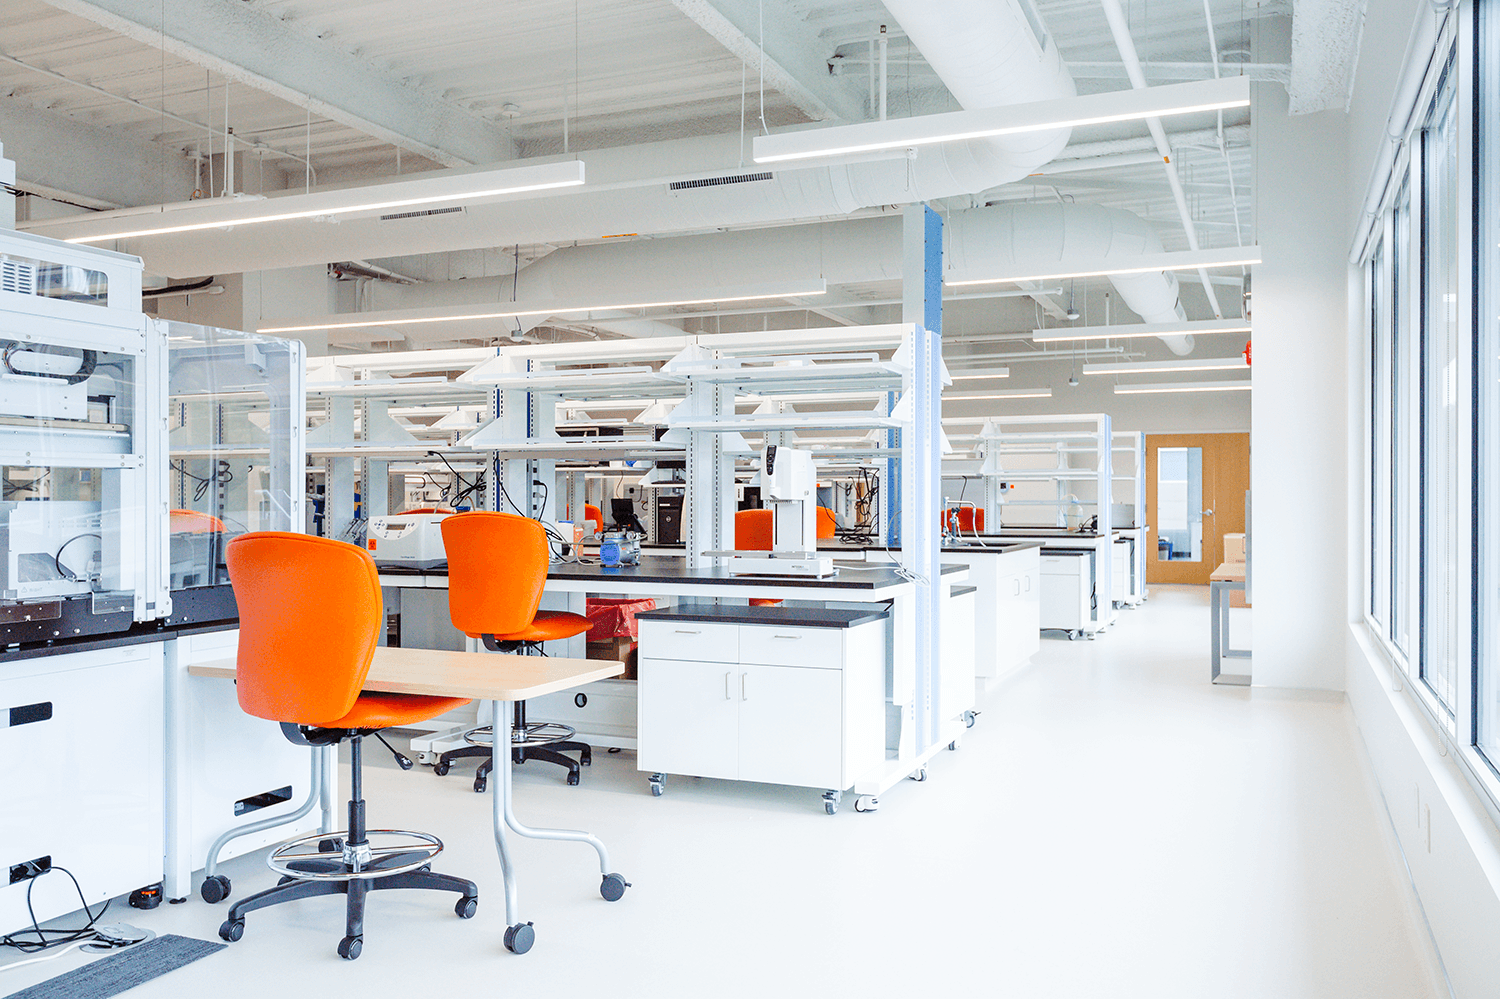 bright white lab space with lab equipment and orange chairs